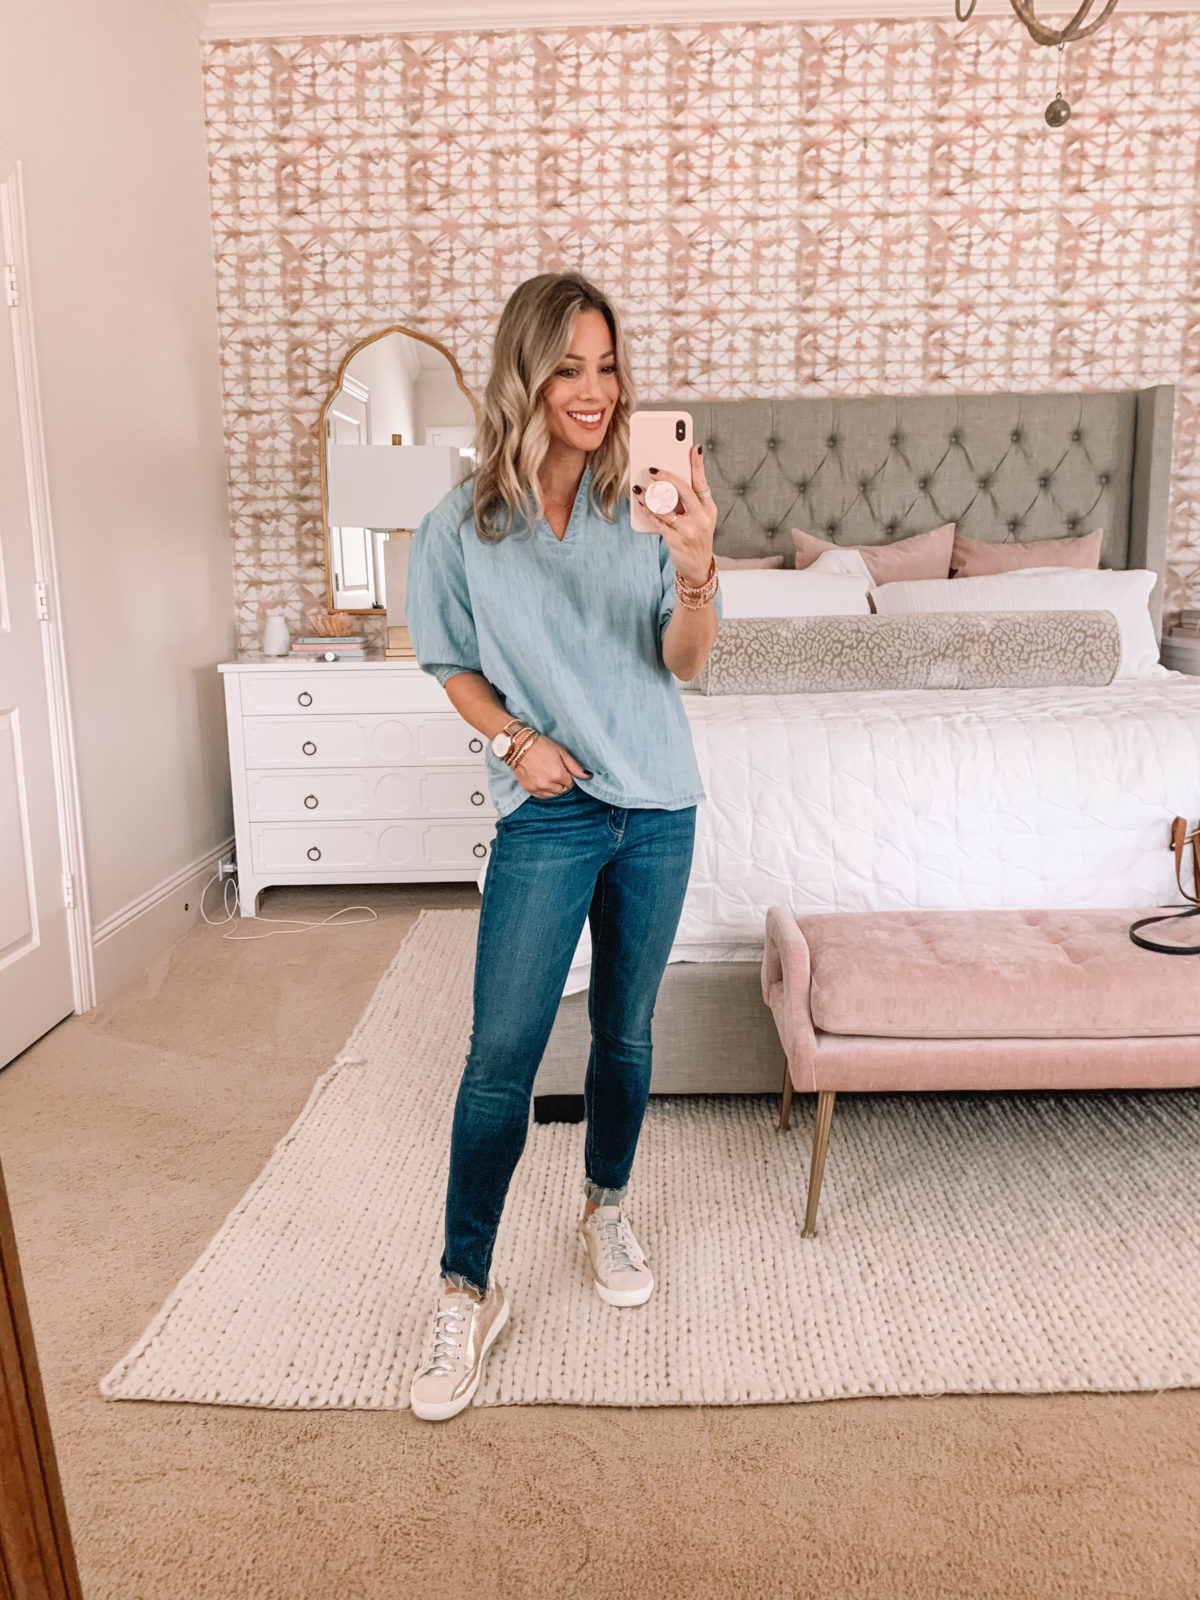 Amazon Fashion Faves, Chambray Top, Jeans, Sneakers